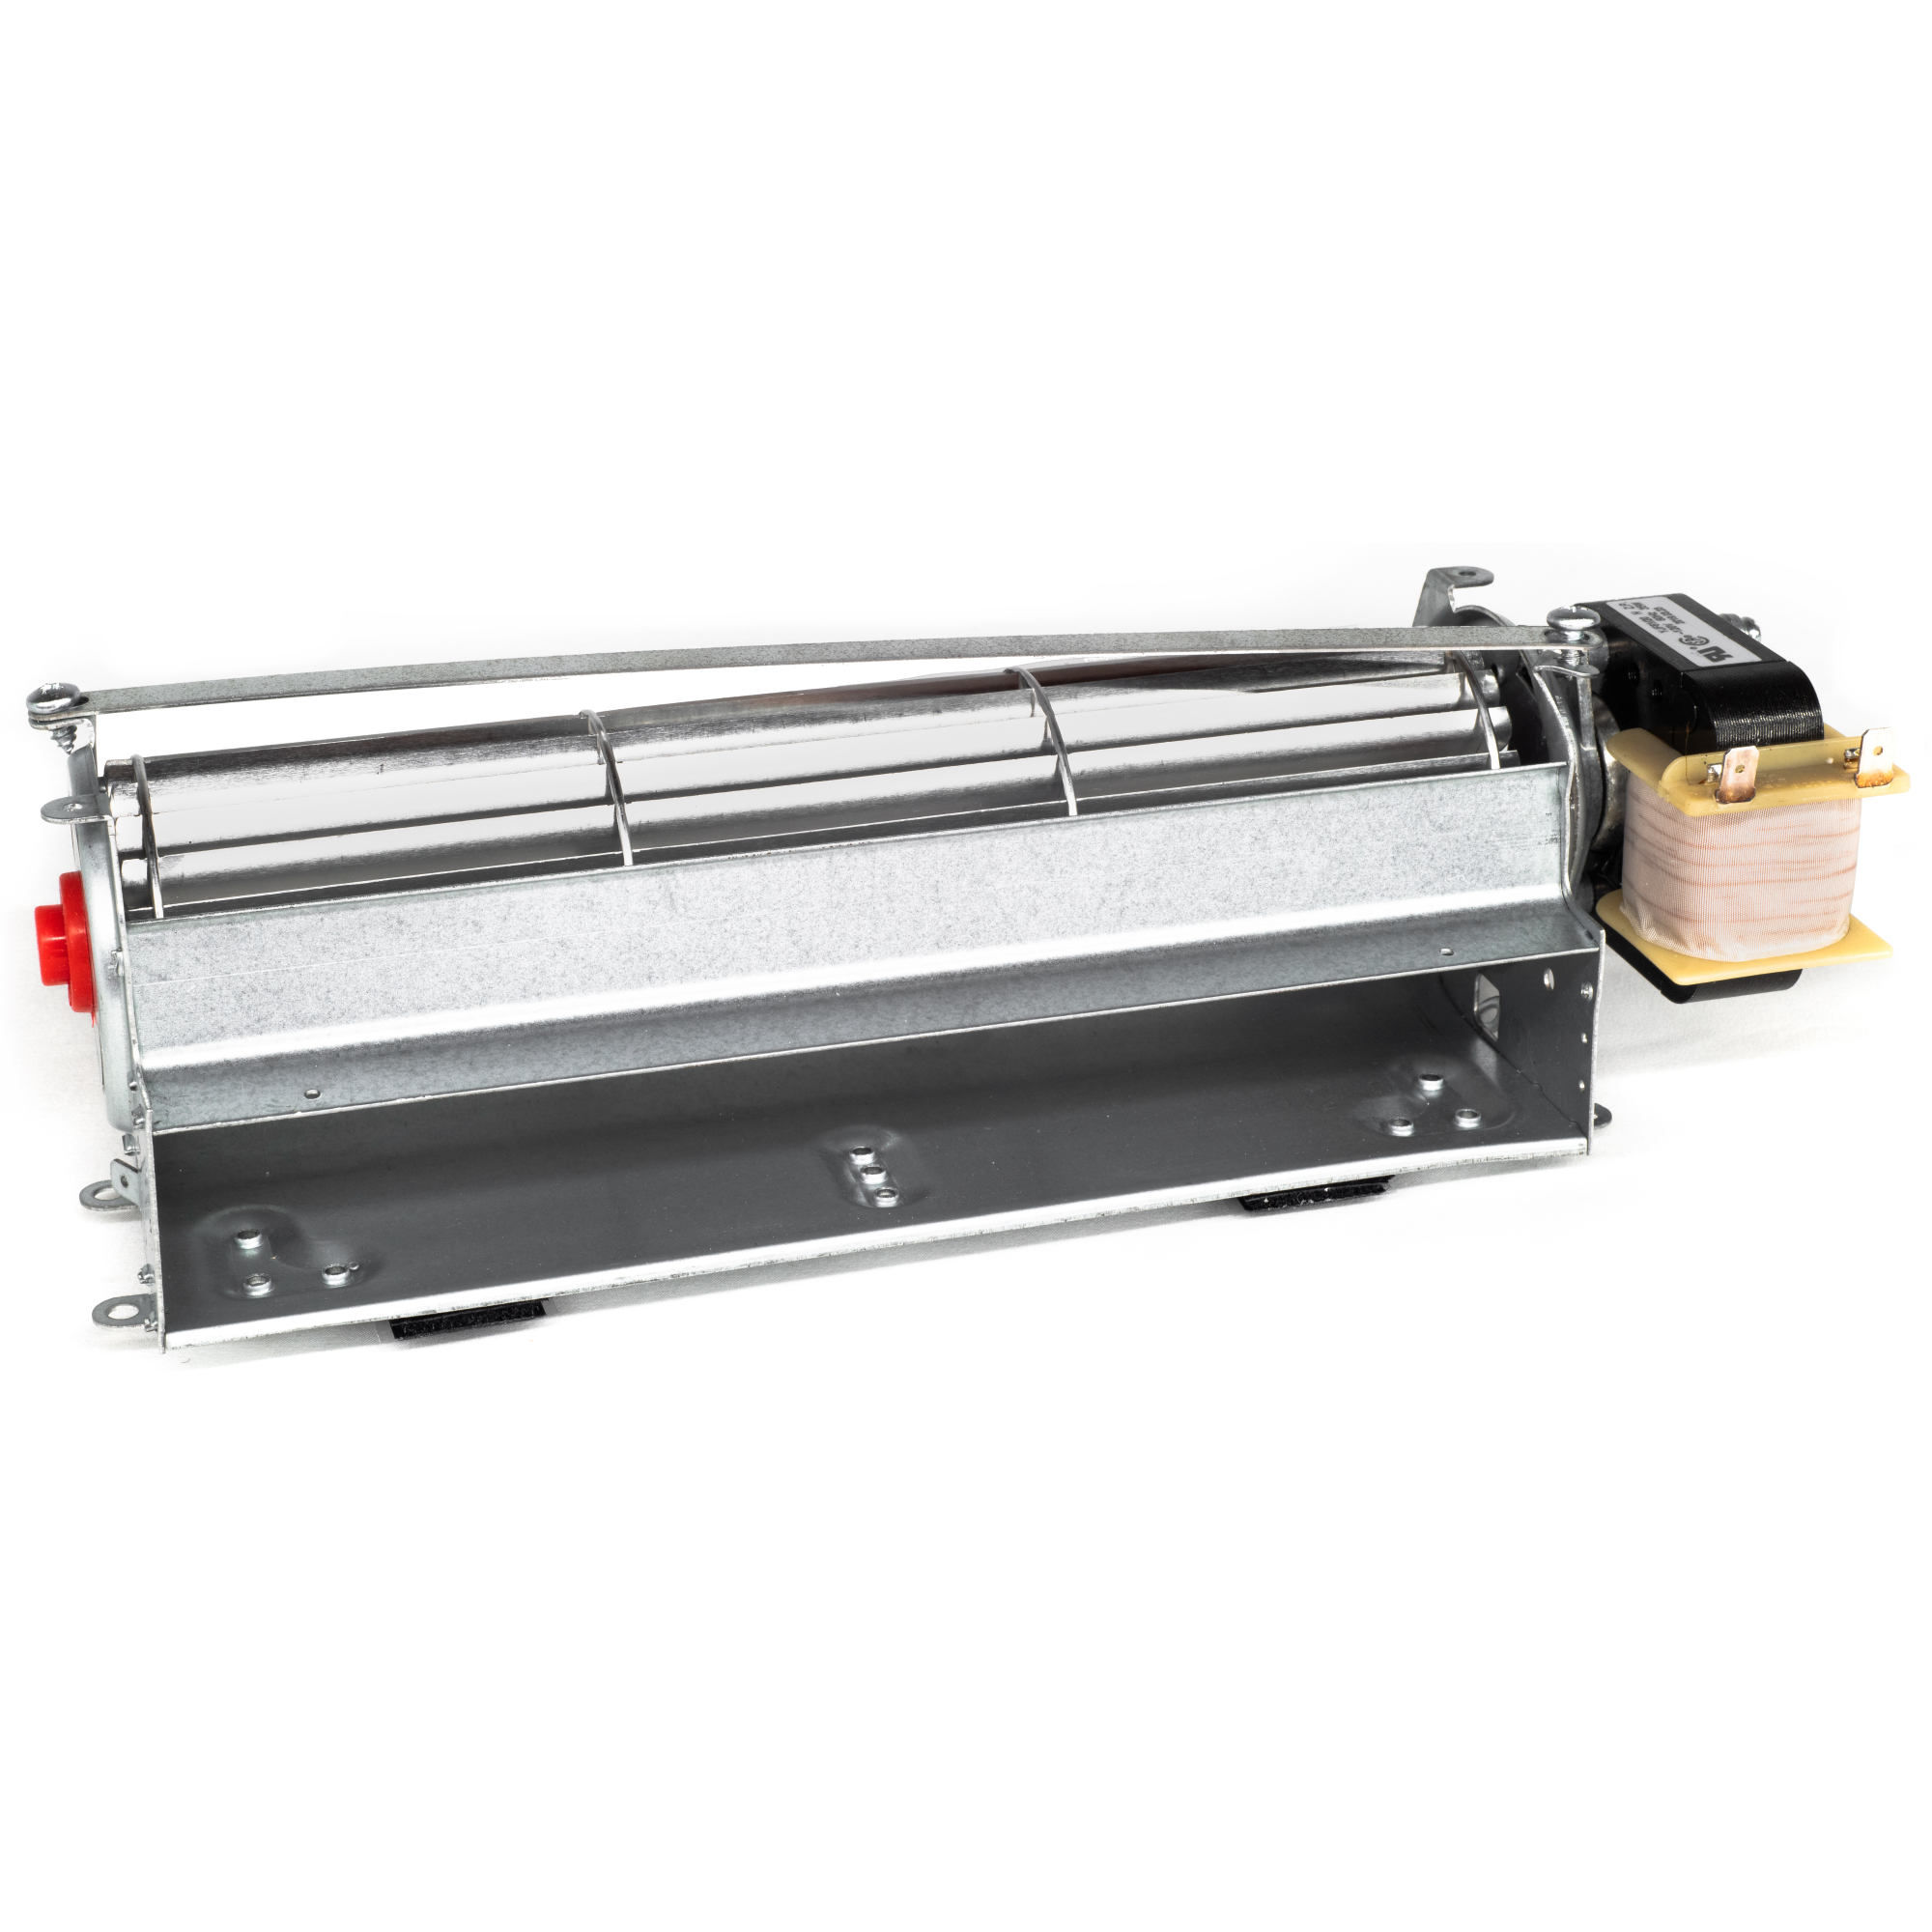 Aftermarket 250-03861 Convection Blower for Avalon, Lopi, Fireplace Xtrordinair, Travis Stoves & Inserts